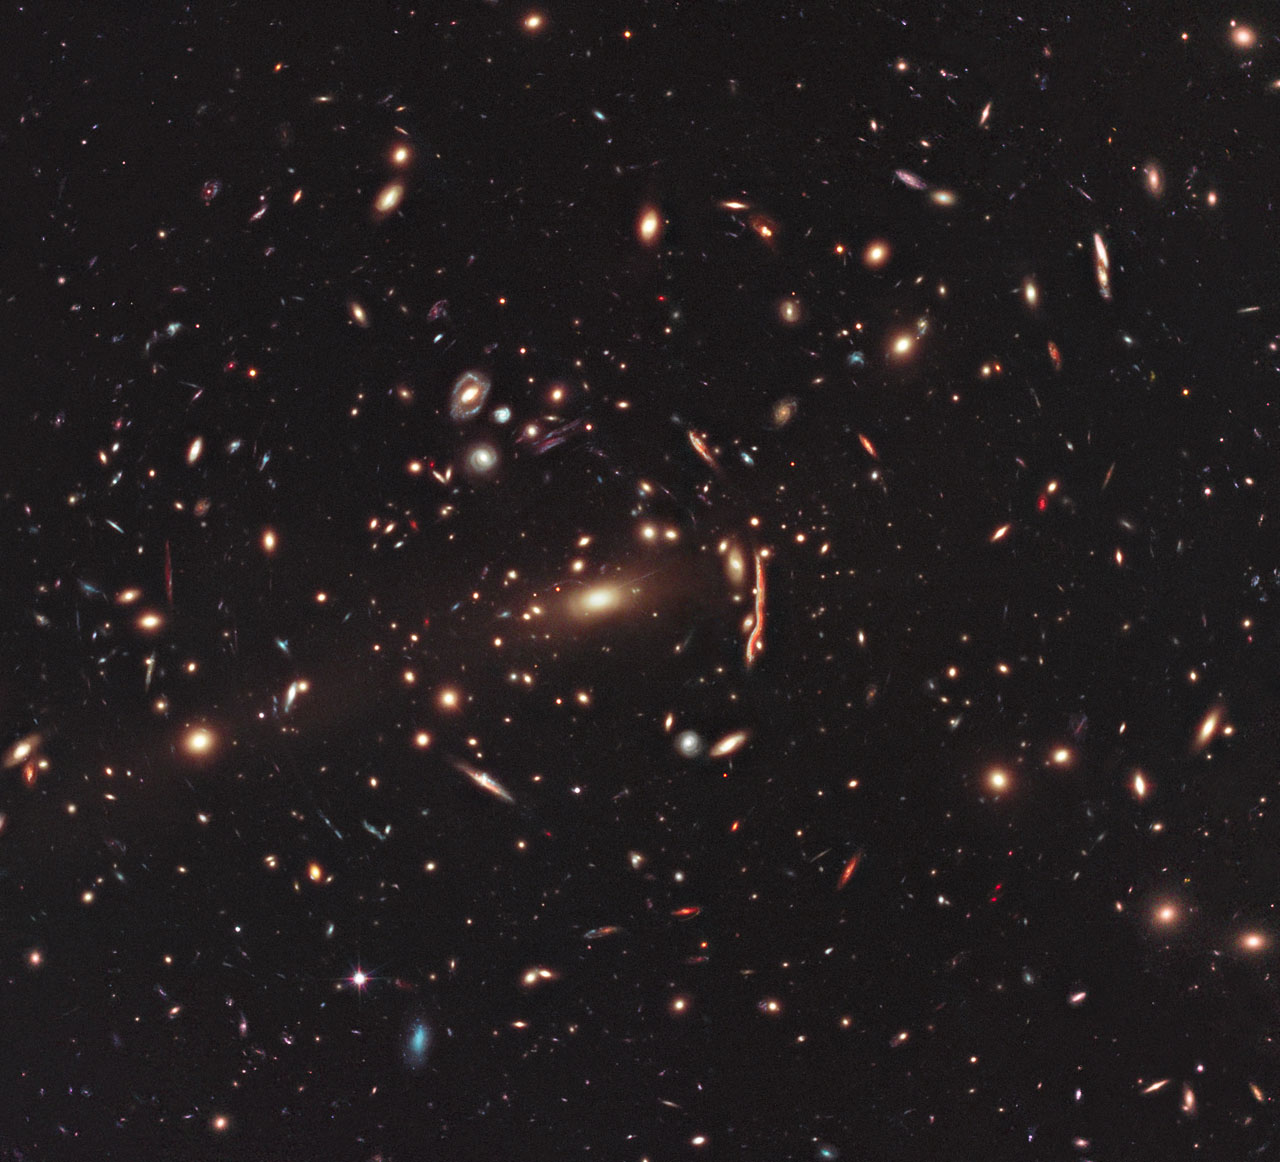 galaxies swarm and light bends under dark matter s sway bad rh blogs discovermagazine com